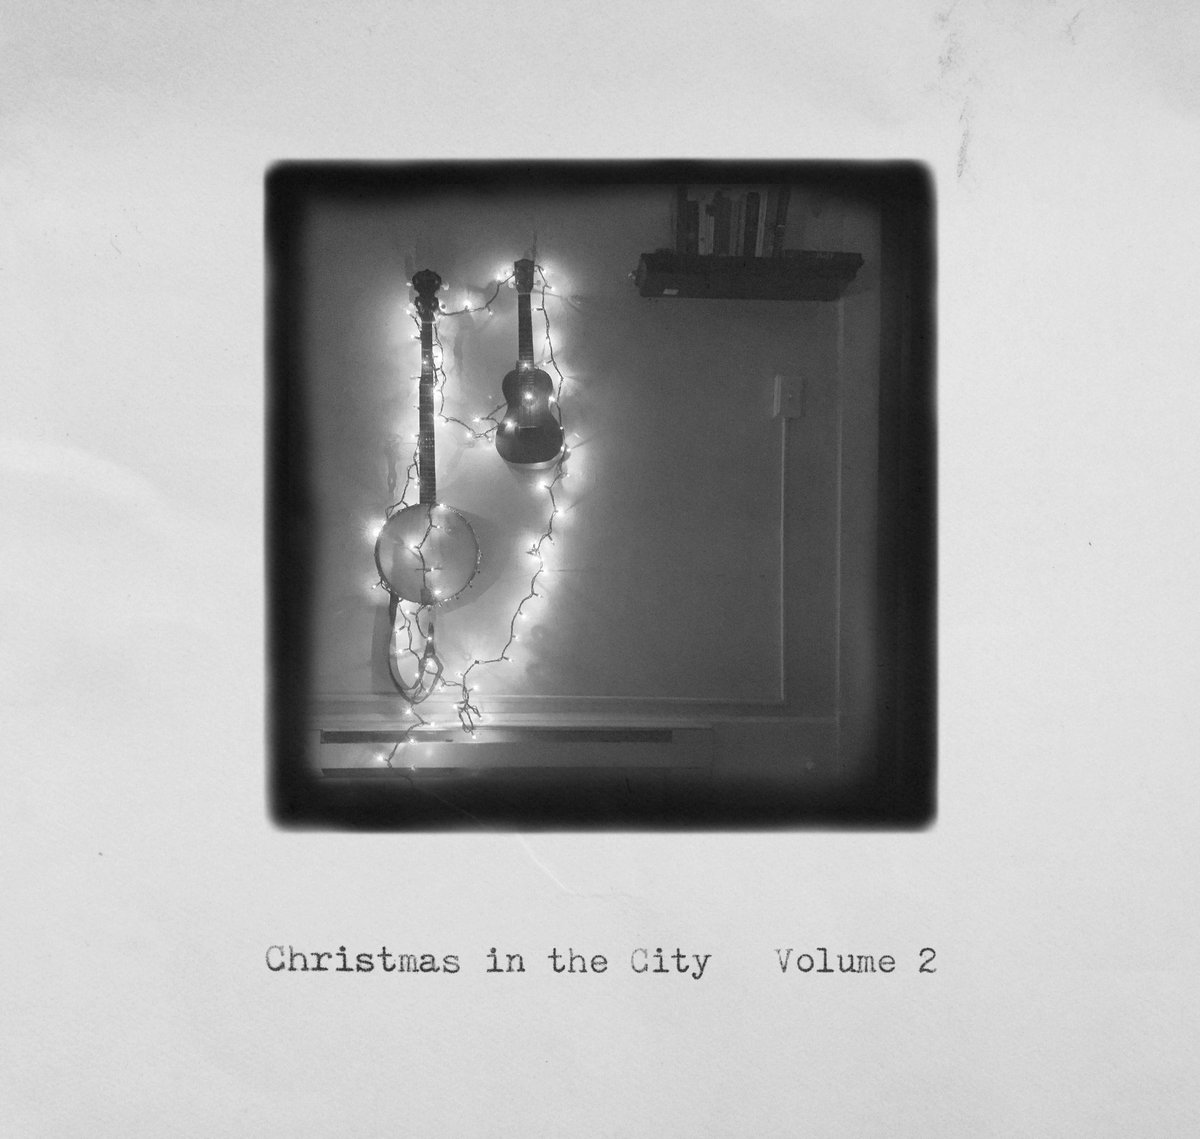 May Oskan - In The Bleak Midwinter @ 'Christmas in the City Vol. 2' album (11th ave records, 11thaverecords 11th avenue)